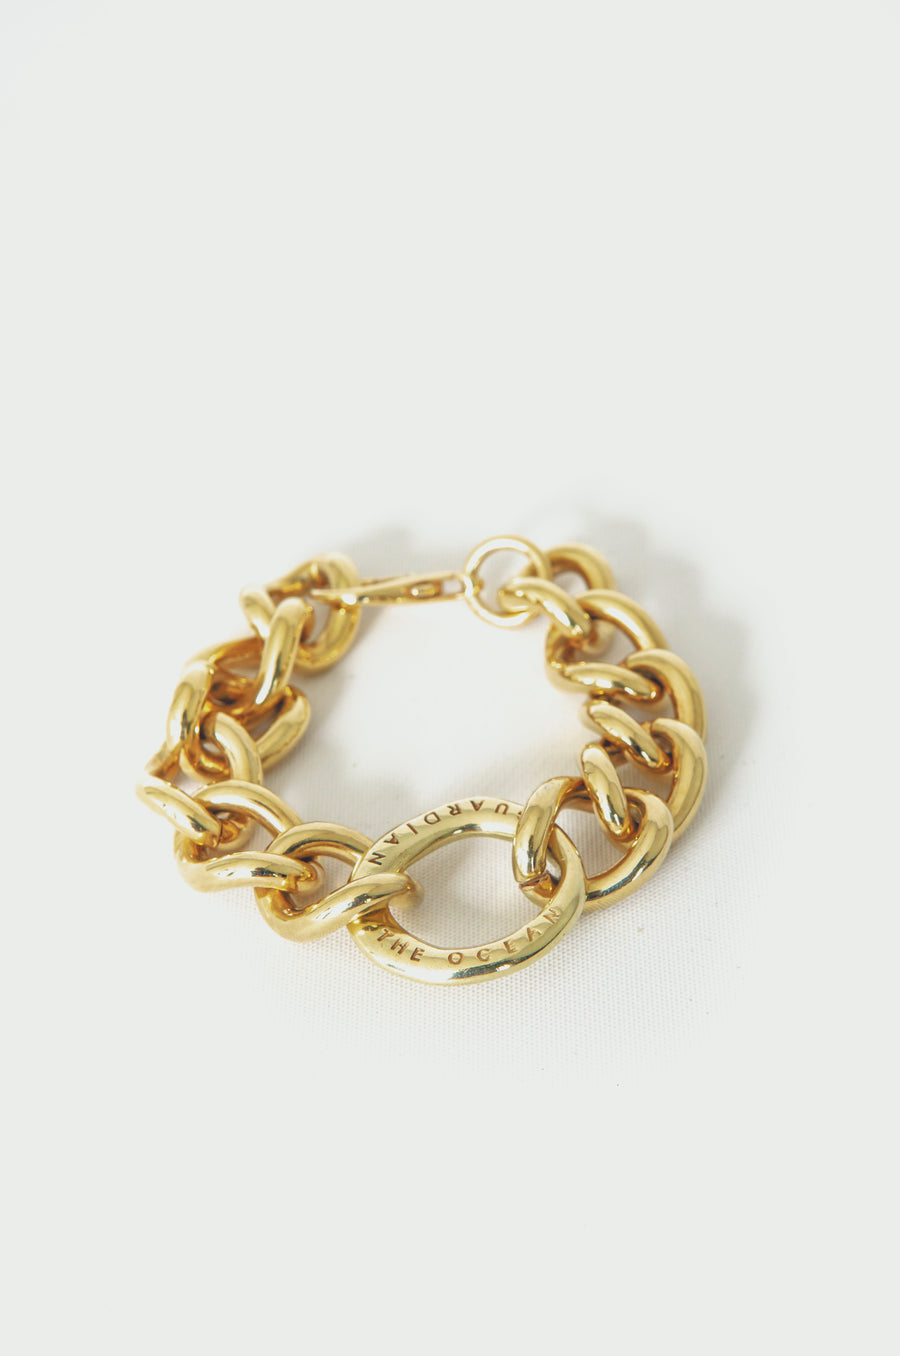 Bulky Bracelet in Gold